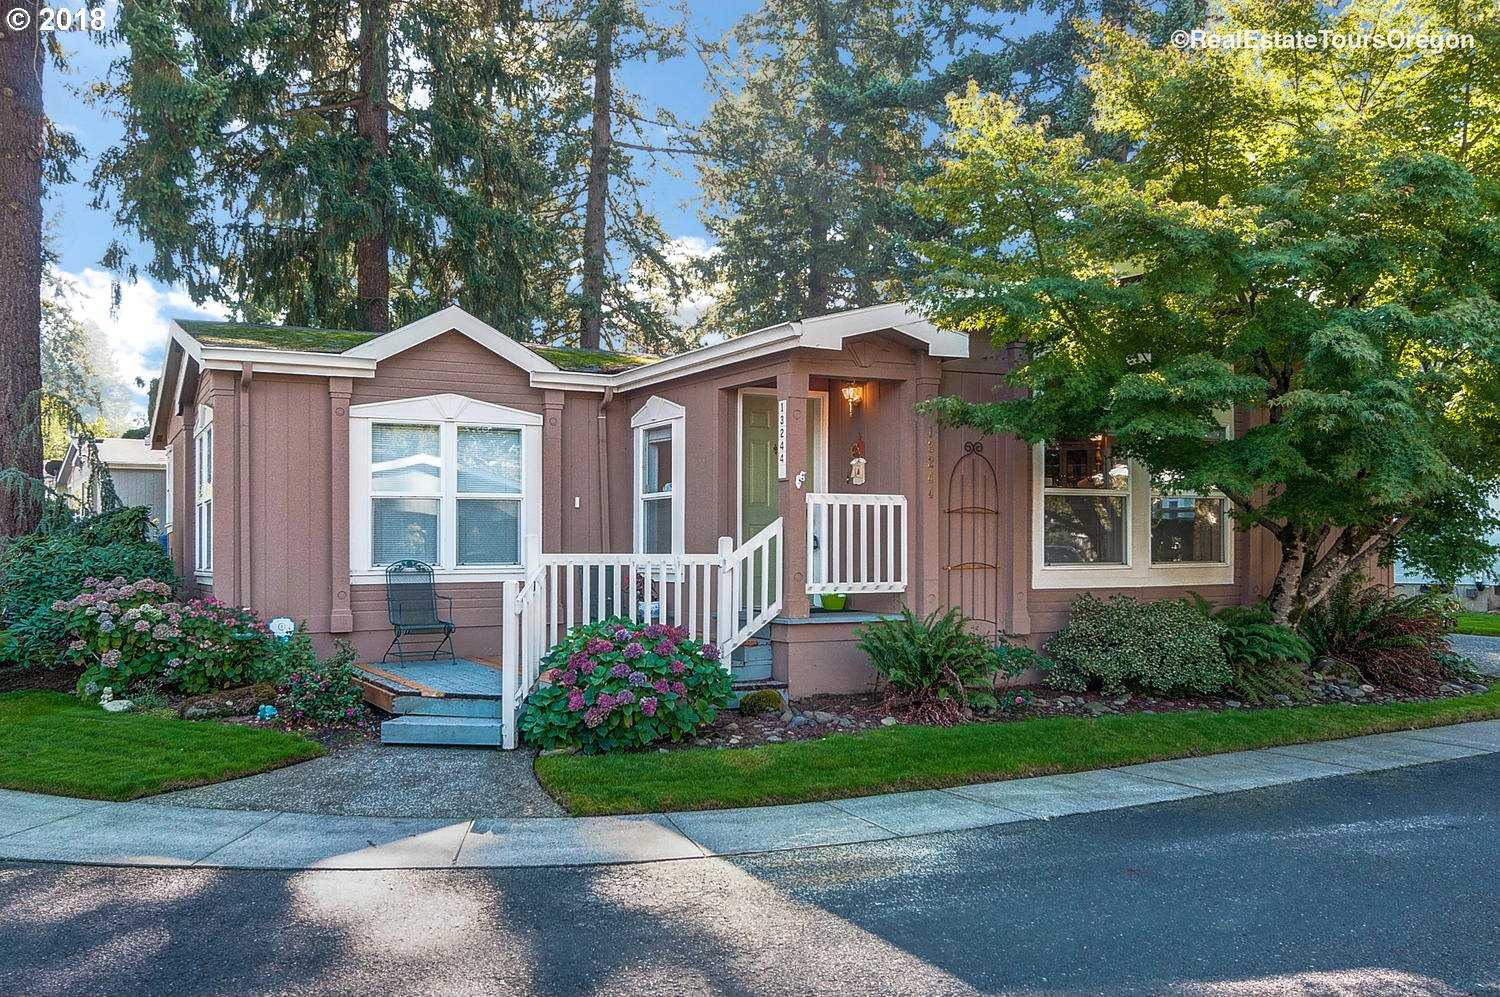 $189,900 - 2Br/2Ba -  for Sale in Reedway Place, Portland